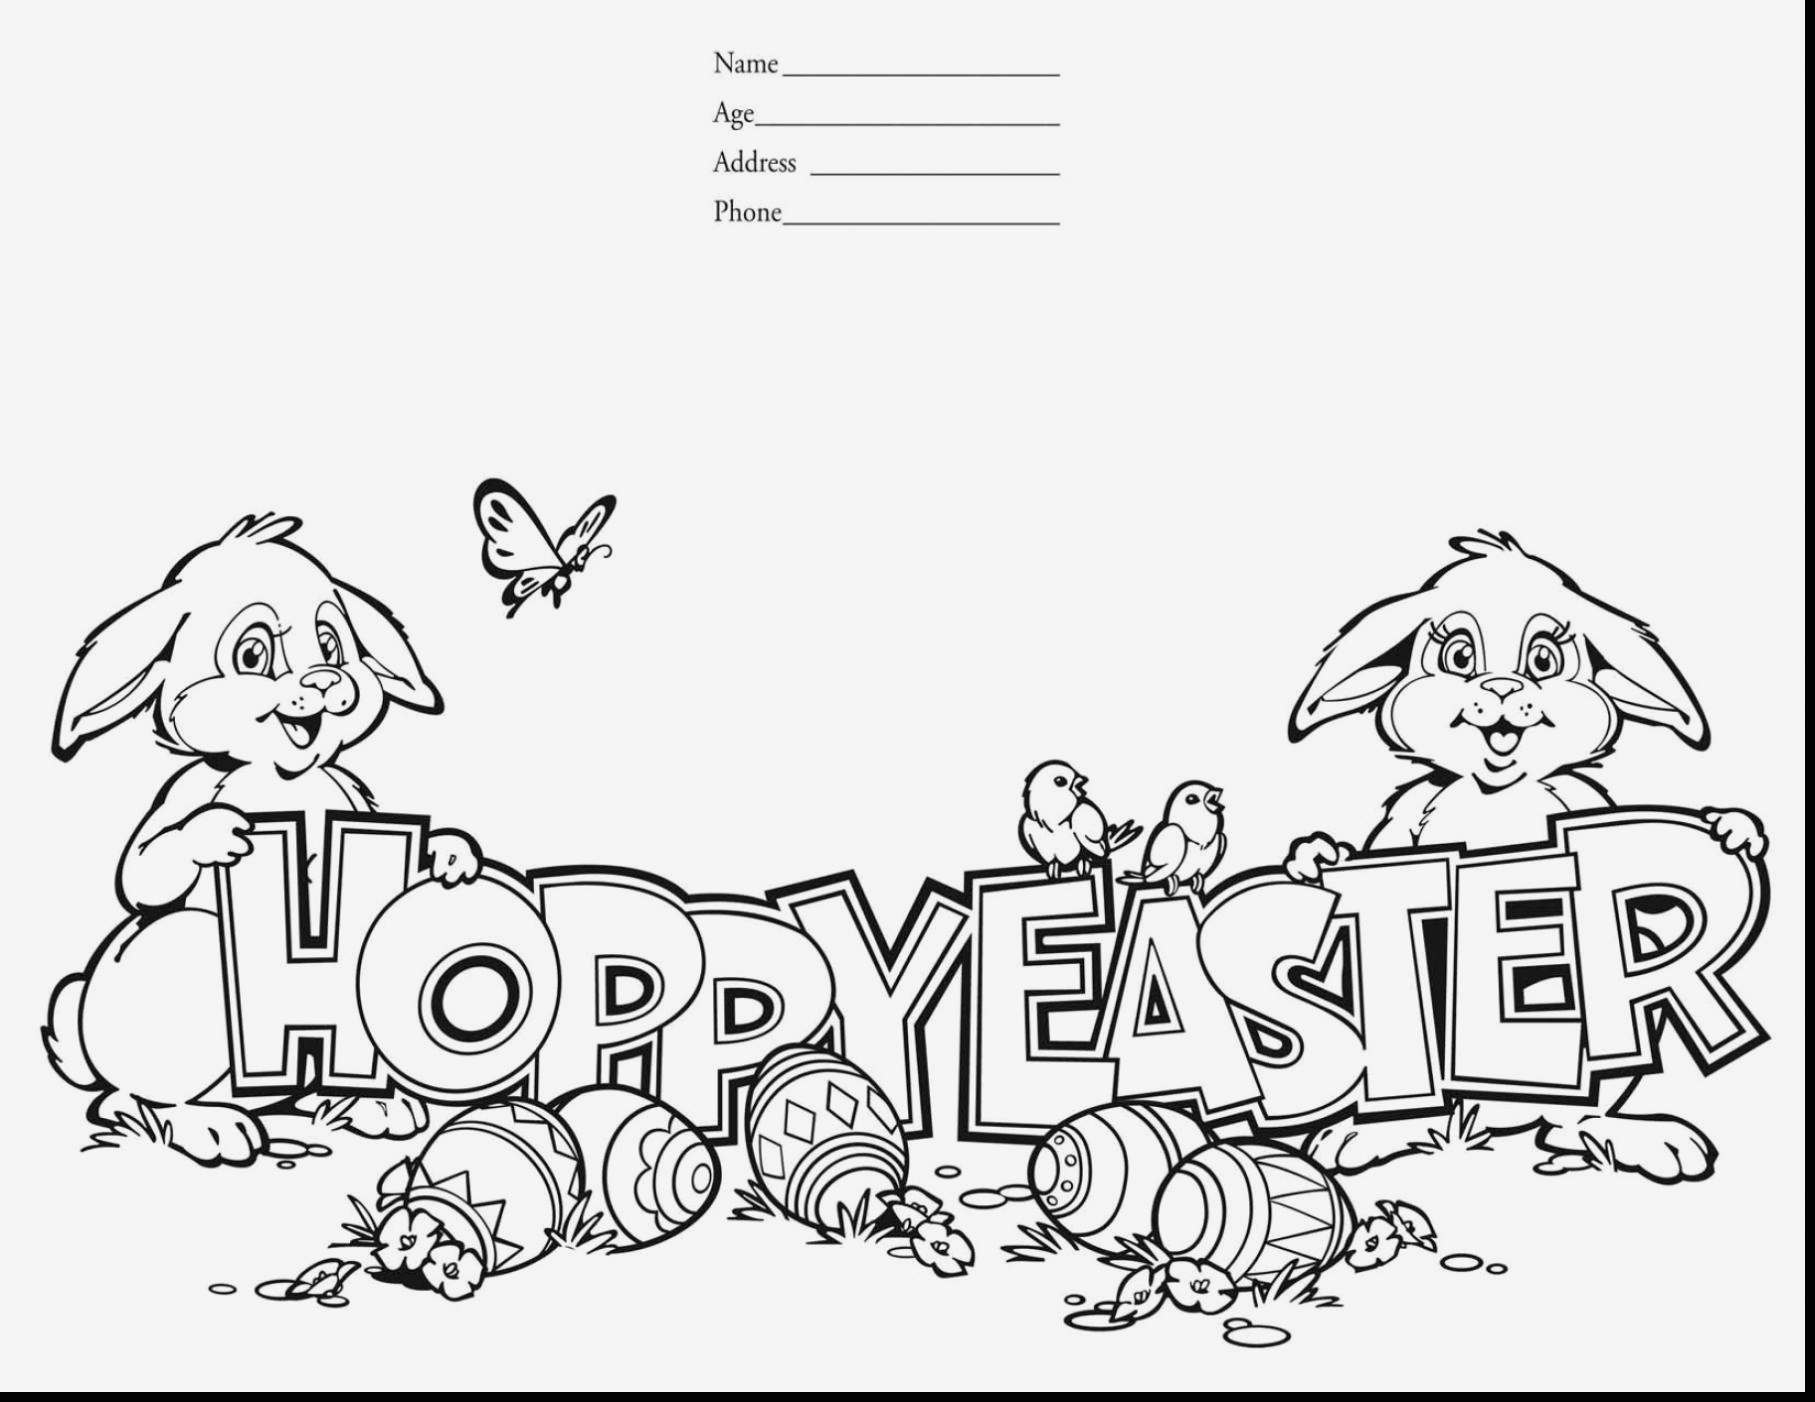 Jesus Easter Coloring Pages Printable Cooloring Book 44 Astonishing Easter Coloring Pages To Print Jesus